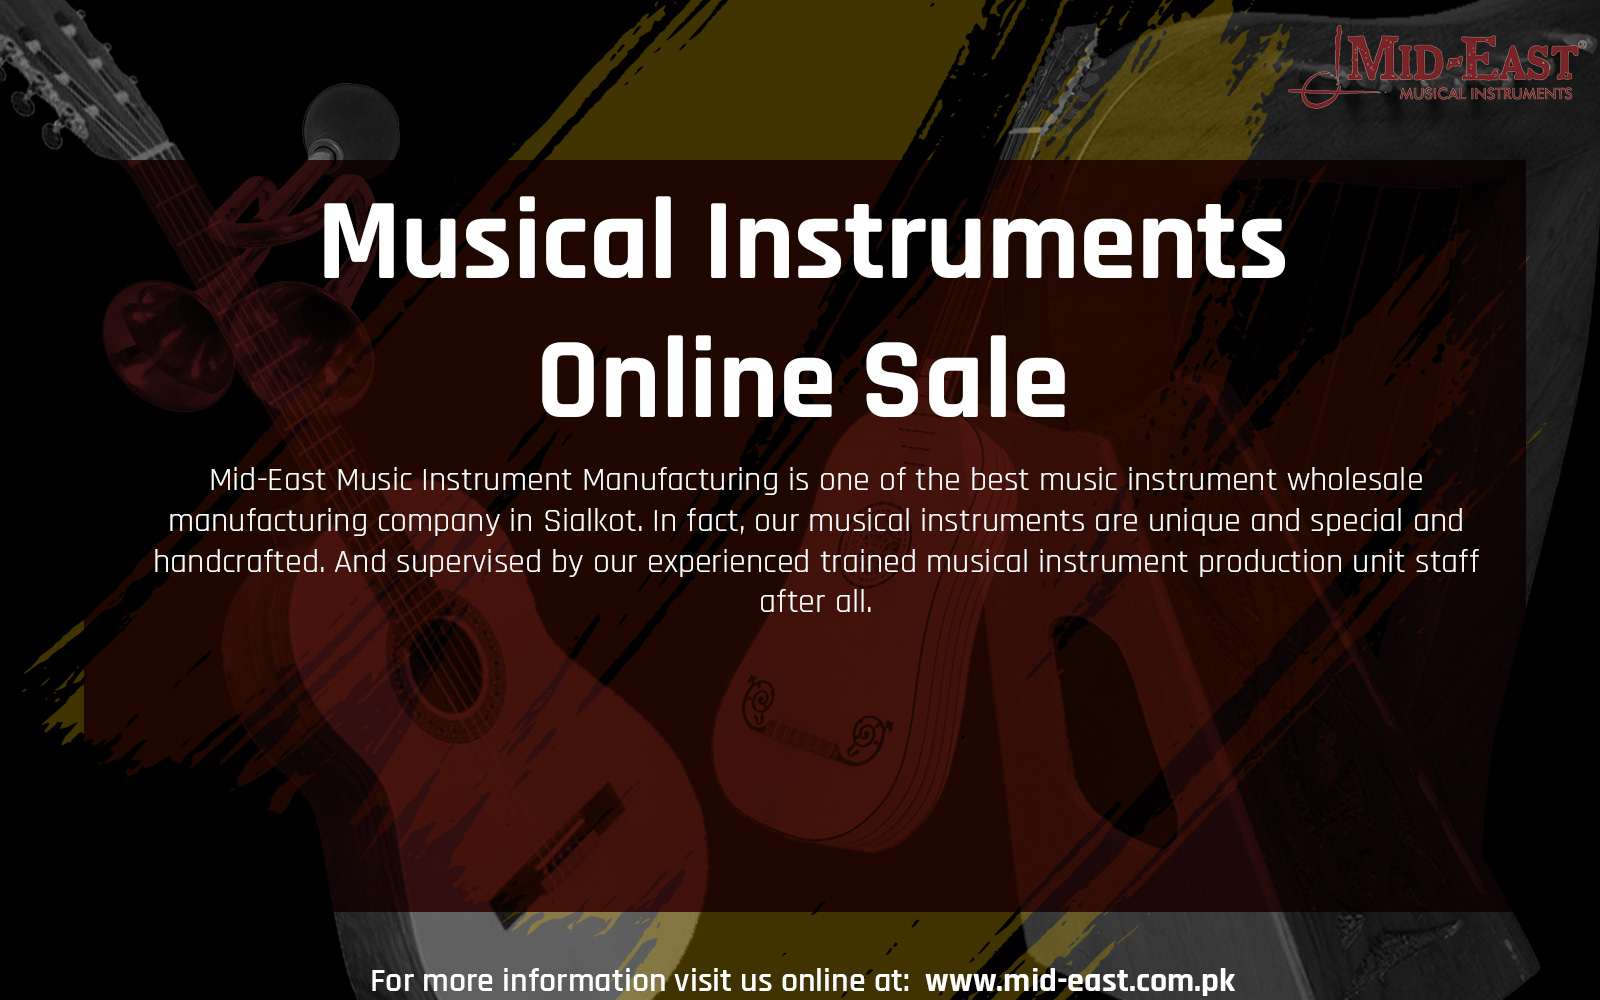 Musical Instruments Online Sale